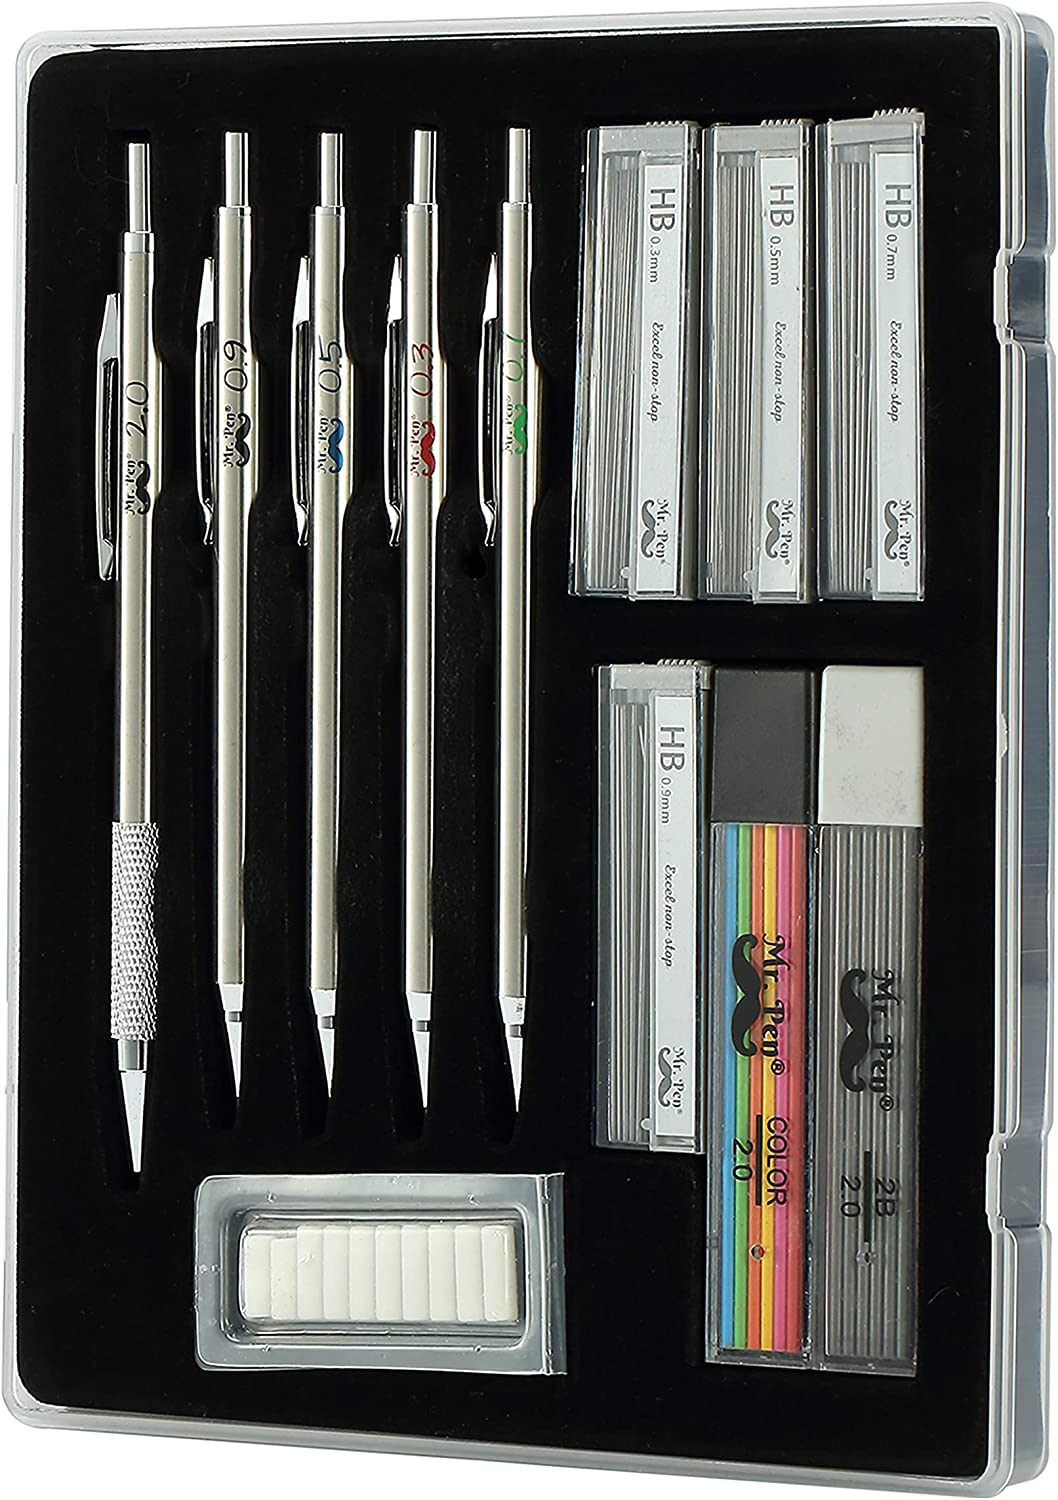 Mr. Pen- Metal Mechanical Pencil Set with Lead and Eraser Refills, 5 Sizes, 0.3, 0.5, 0.7, 0.9, 2mm, Drafting, Sketching, Architecture, Drawing Mechanical Pencils, Metal Mechanical Pencils : Office Products